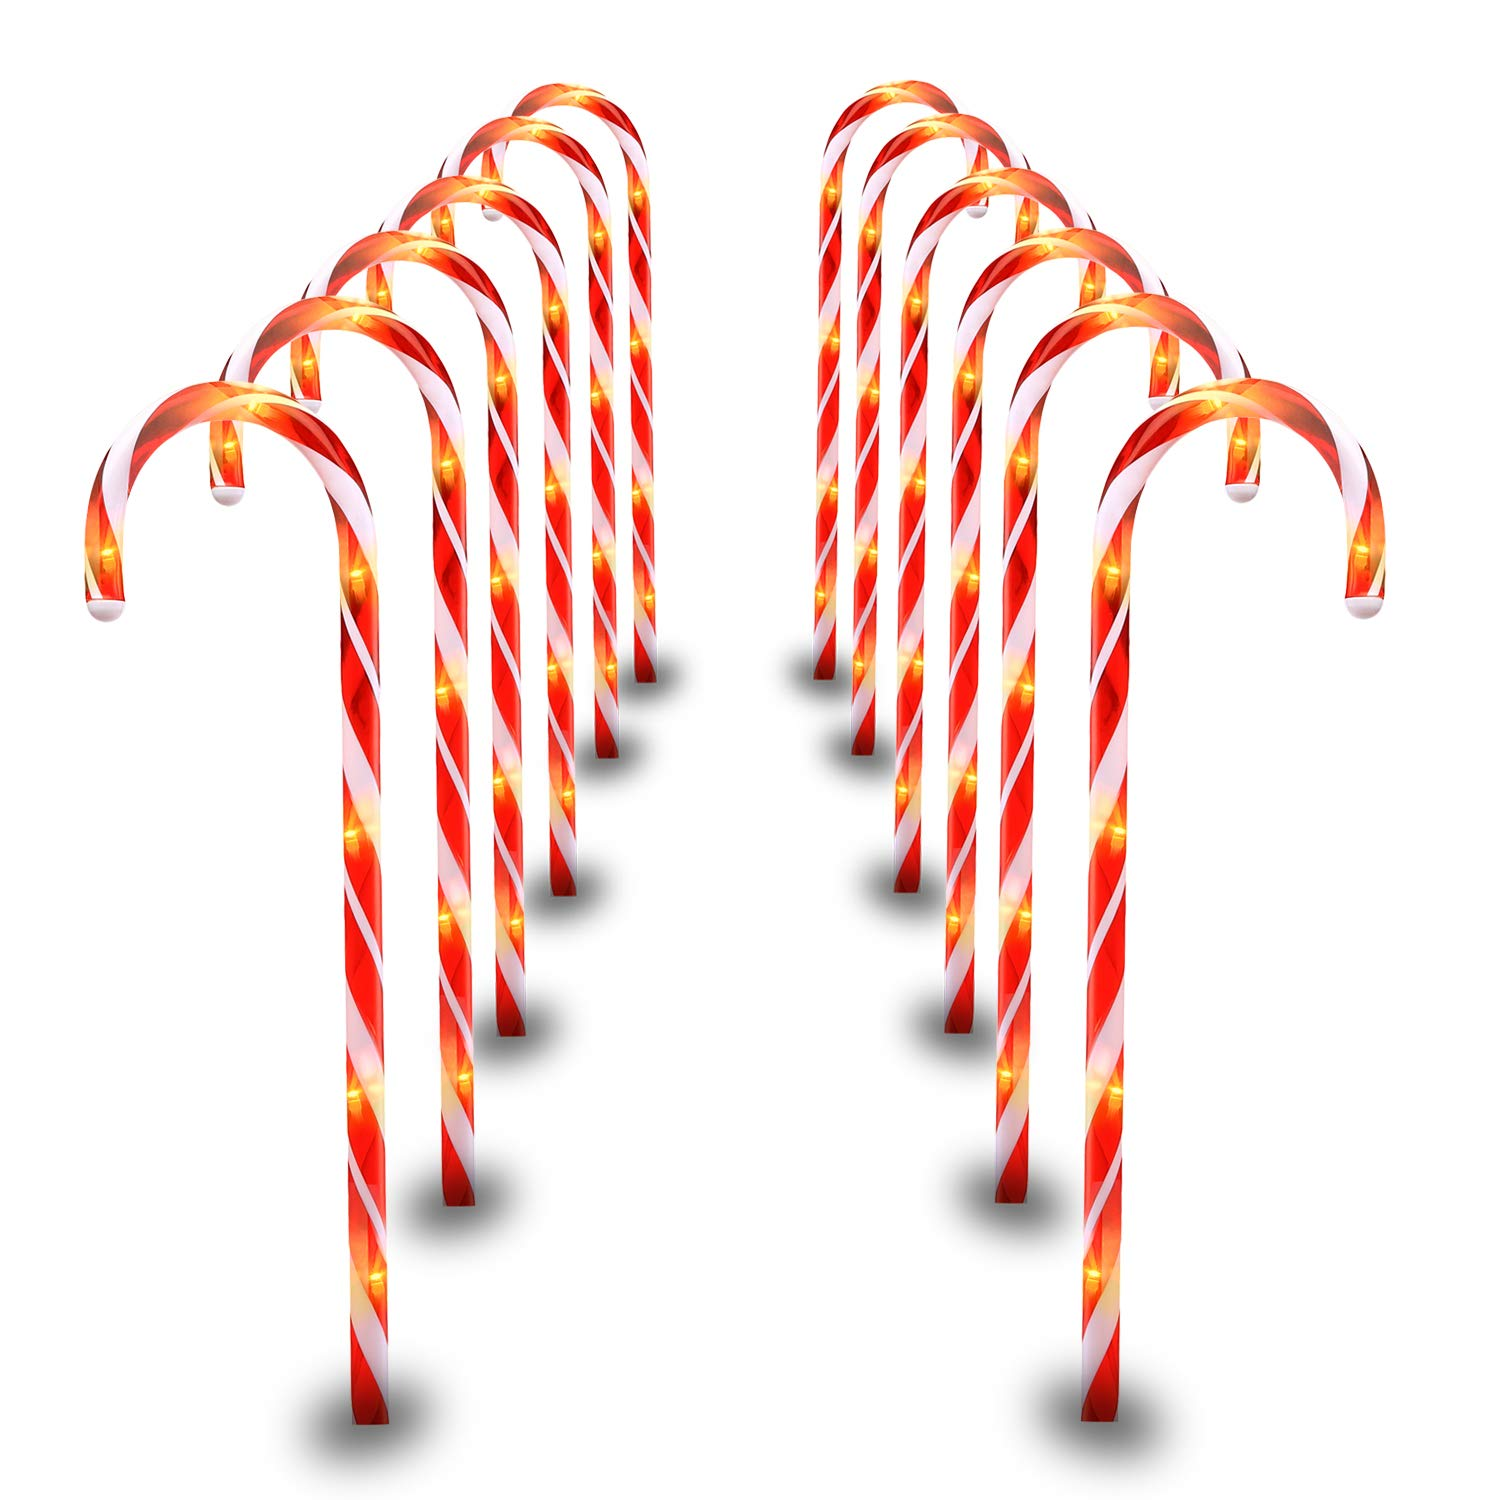 29 Inches Christmas Candy Cane Pathway Markers Set of 12 Christmas Indoor/Outdoor Decoration Lights 8 Blinking Modes by Luditek